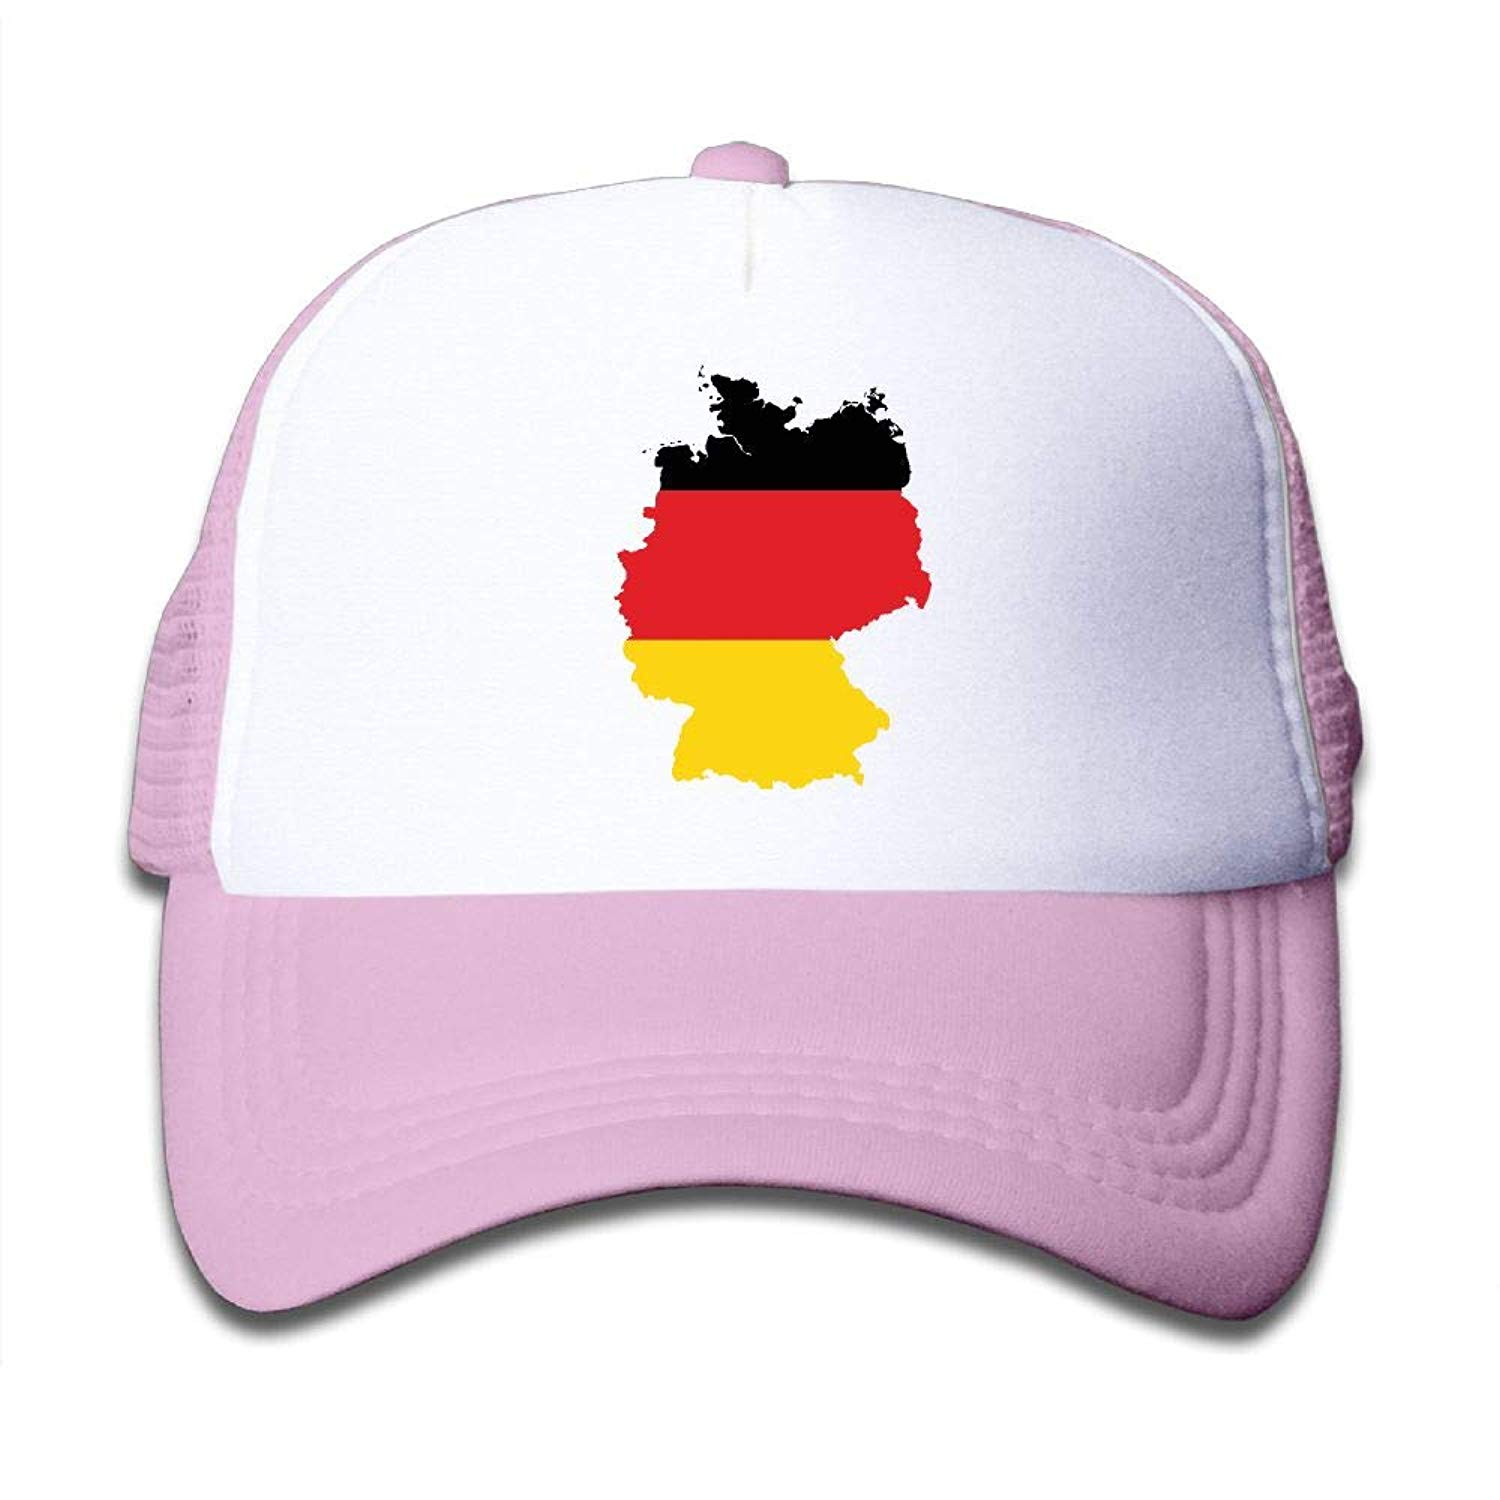 36816eb5cf1 Get Quotations · BOYGIRL-CAP German Flag Map Kids Toddler Boys Girls  Adjustable Mesh Cap Hip Hop Caps